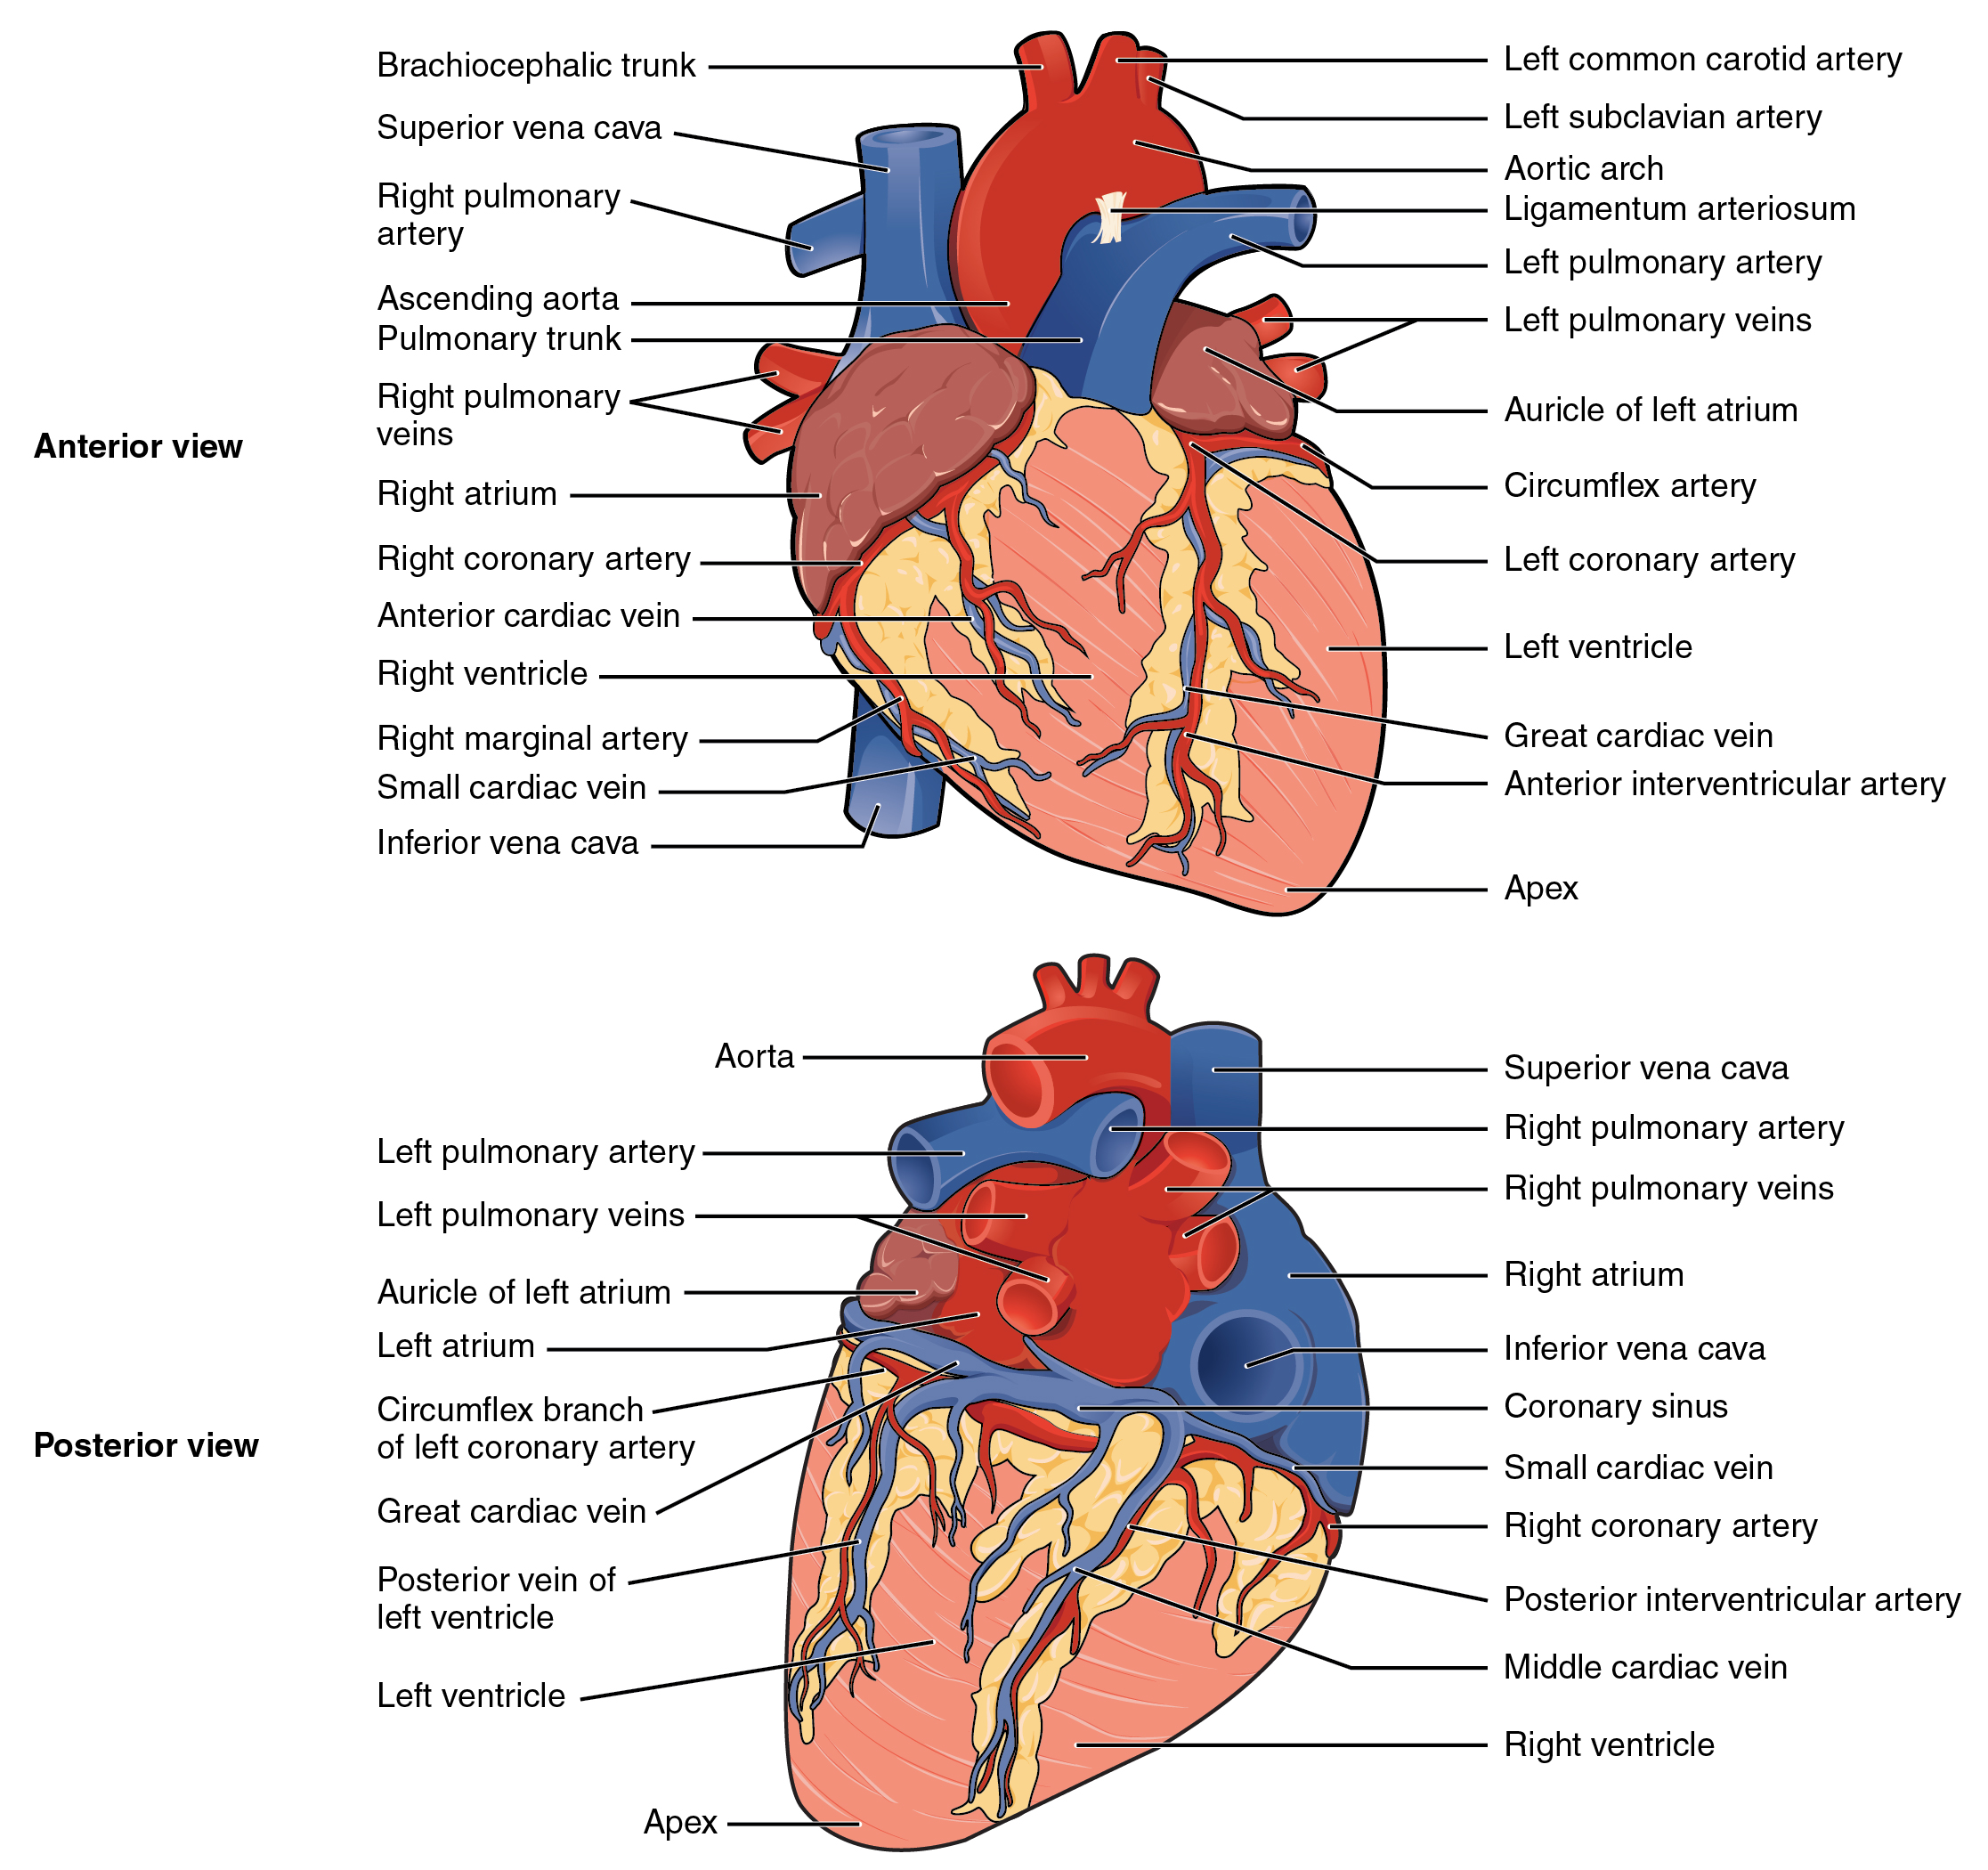 19.1 Heart Anatomy – Anatomy and Physiology